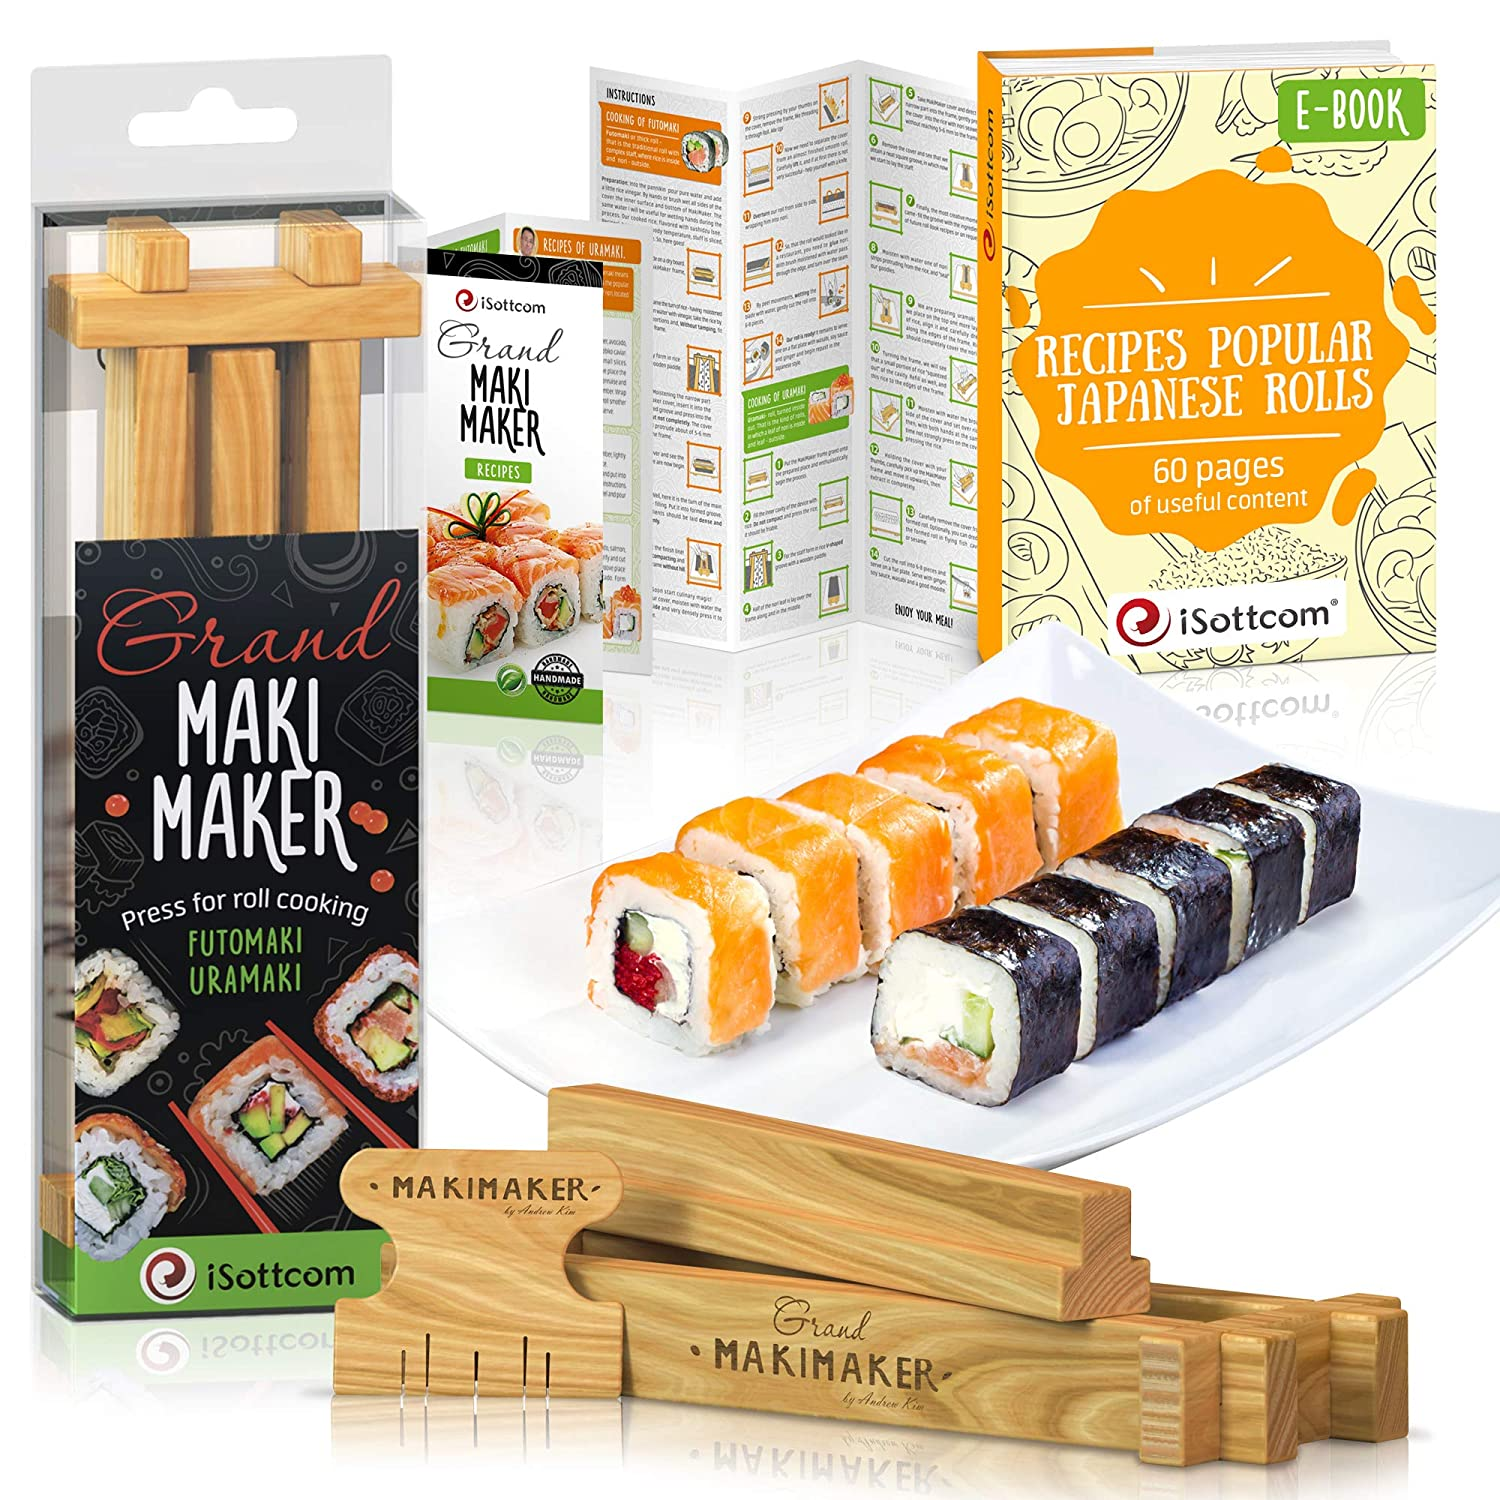 Sushi Making Kit by iSottcom - Makimaker - Sushi Maker Best for Beginners and Kids - Sushi Kit - Japanese Sushi and Rolls at Home Quick and Easy with Sushi Mold - Sushi Press - Original Gift Idea Makimaker Mini